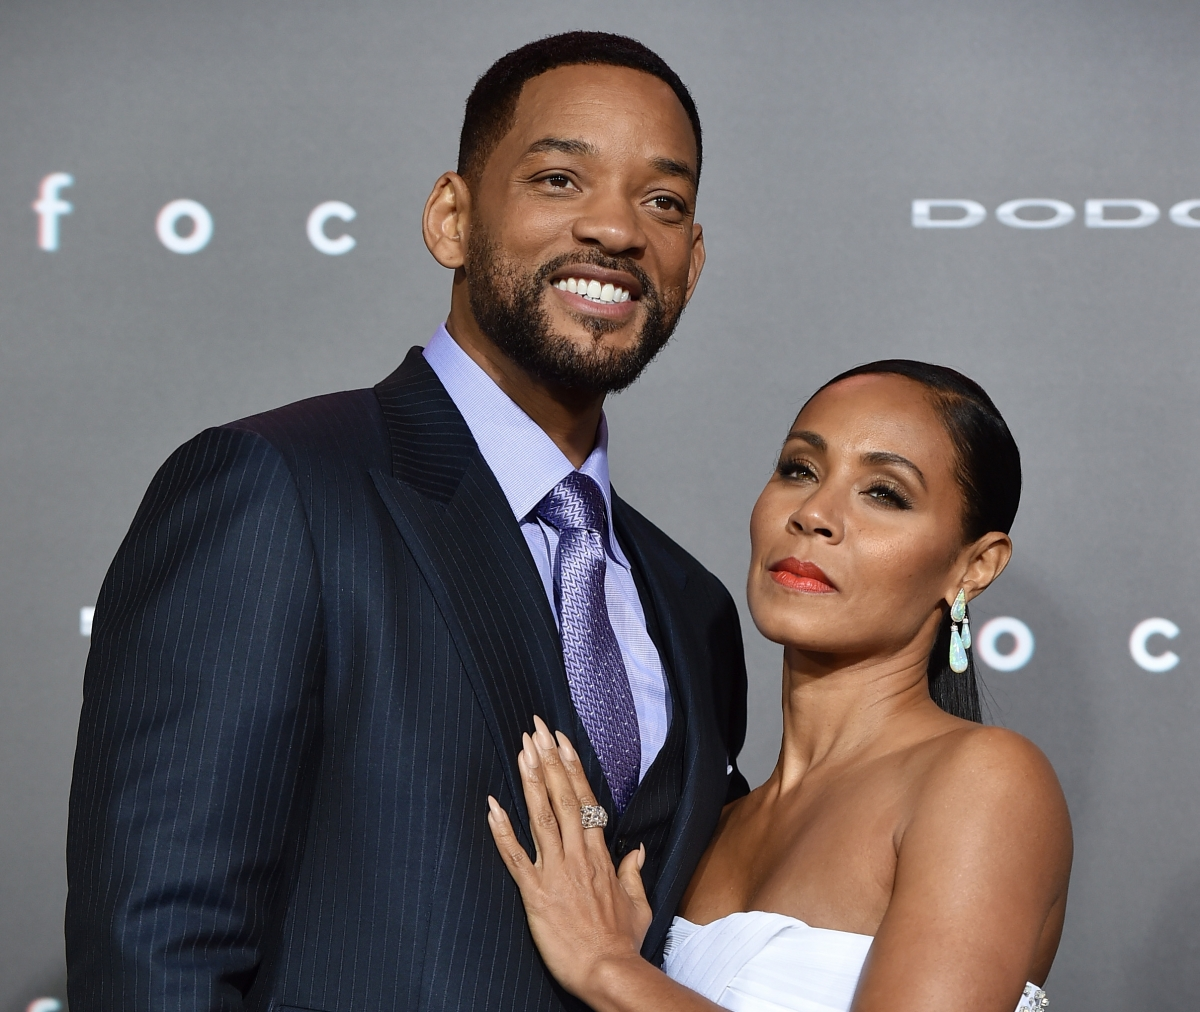 ... Smith hints at boycotting Academy Awards after Will Smith's Concussion Will Smith